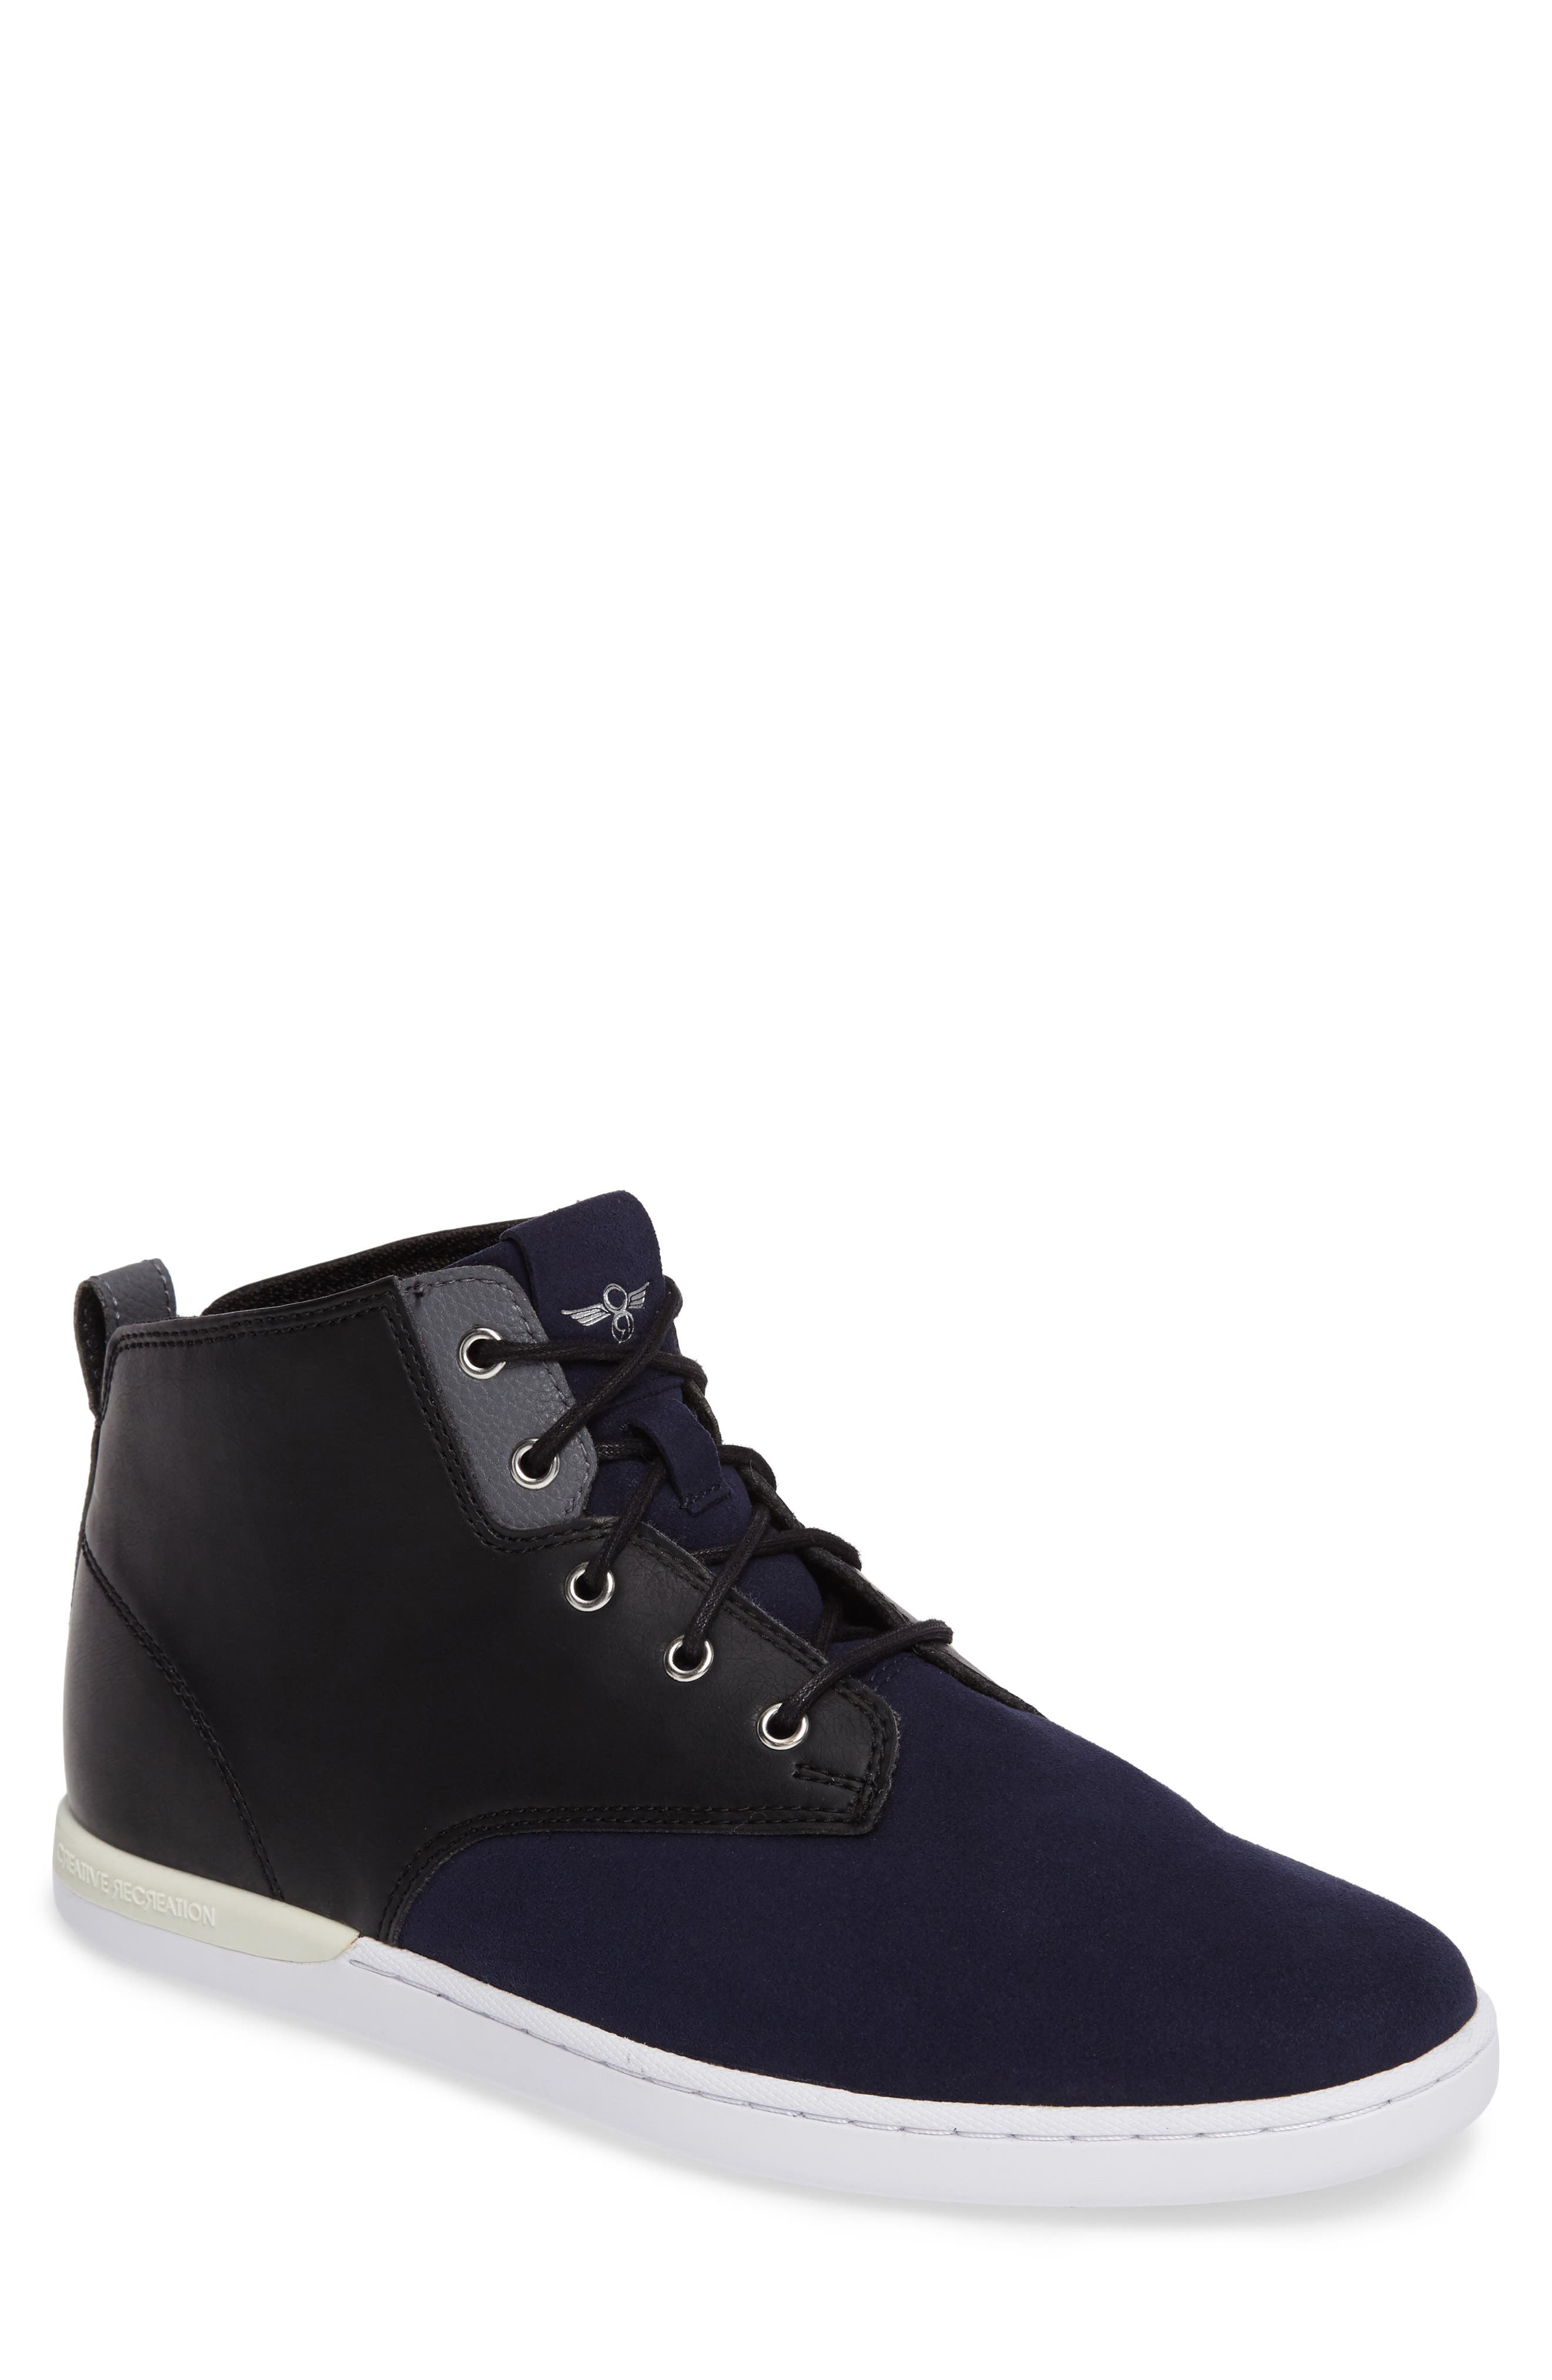 Creative Recreation 'Vito' Sneaker (Men)